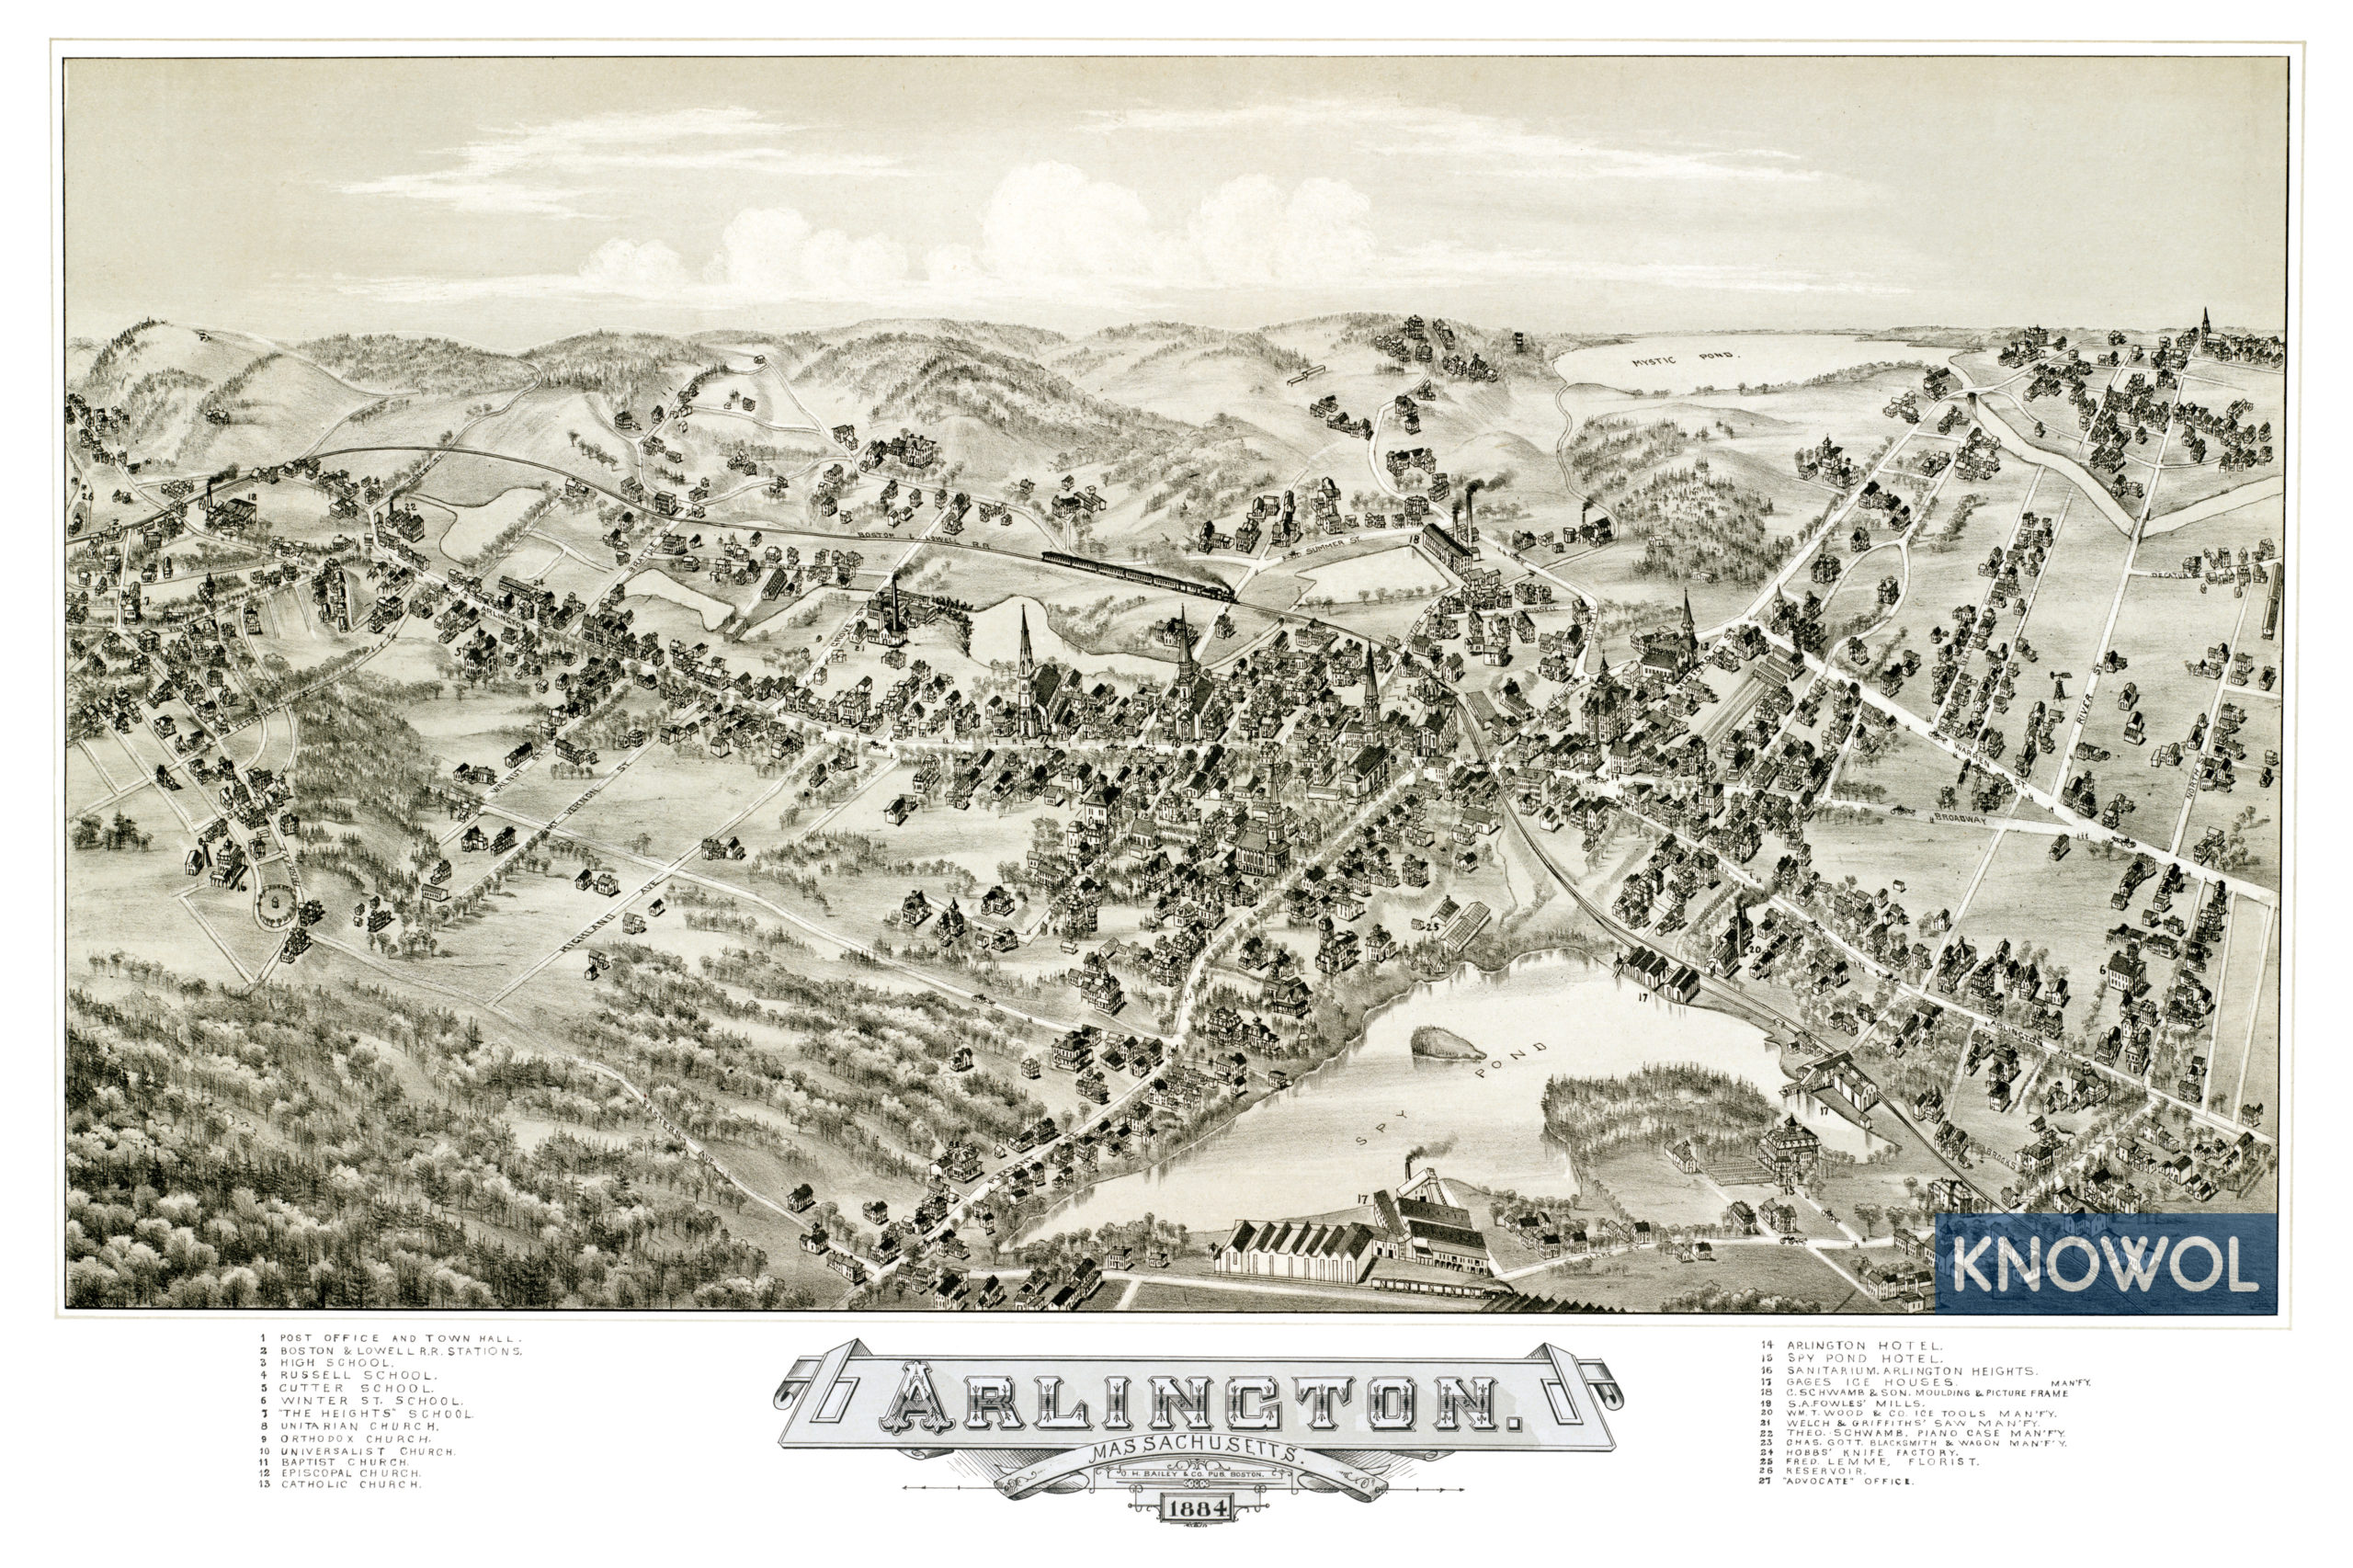 Beautifully restored map of Arlington, Machusetts from ... on map of axtell, map of fort worth, map of seaport district, map of dwight, map of graysville, map of arga, map of girard, map of foxborough, map of somervell county, map of ponderosa estates, map of north chelmsford, map of beltzhoover, map of fort steilacoom, map of east jacksonville, map of comfort, map of cedar, map of west salem, map of roane county, map of crandall, map of oak hill,